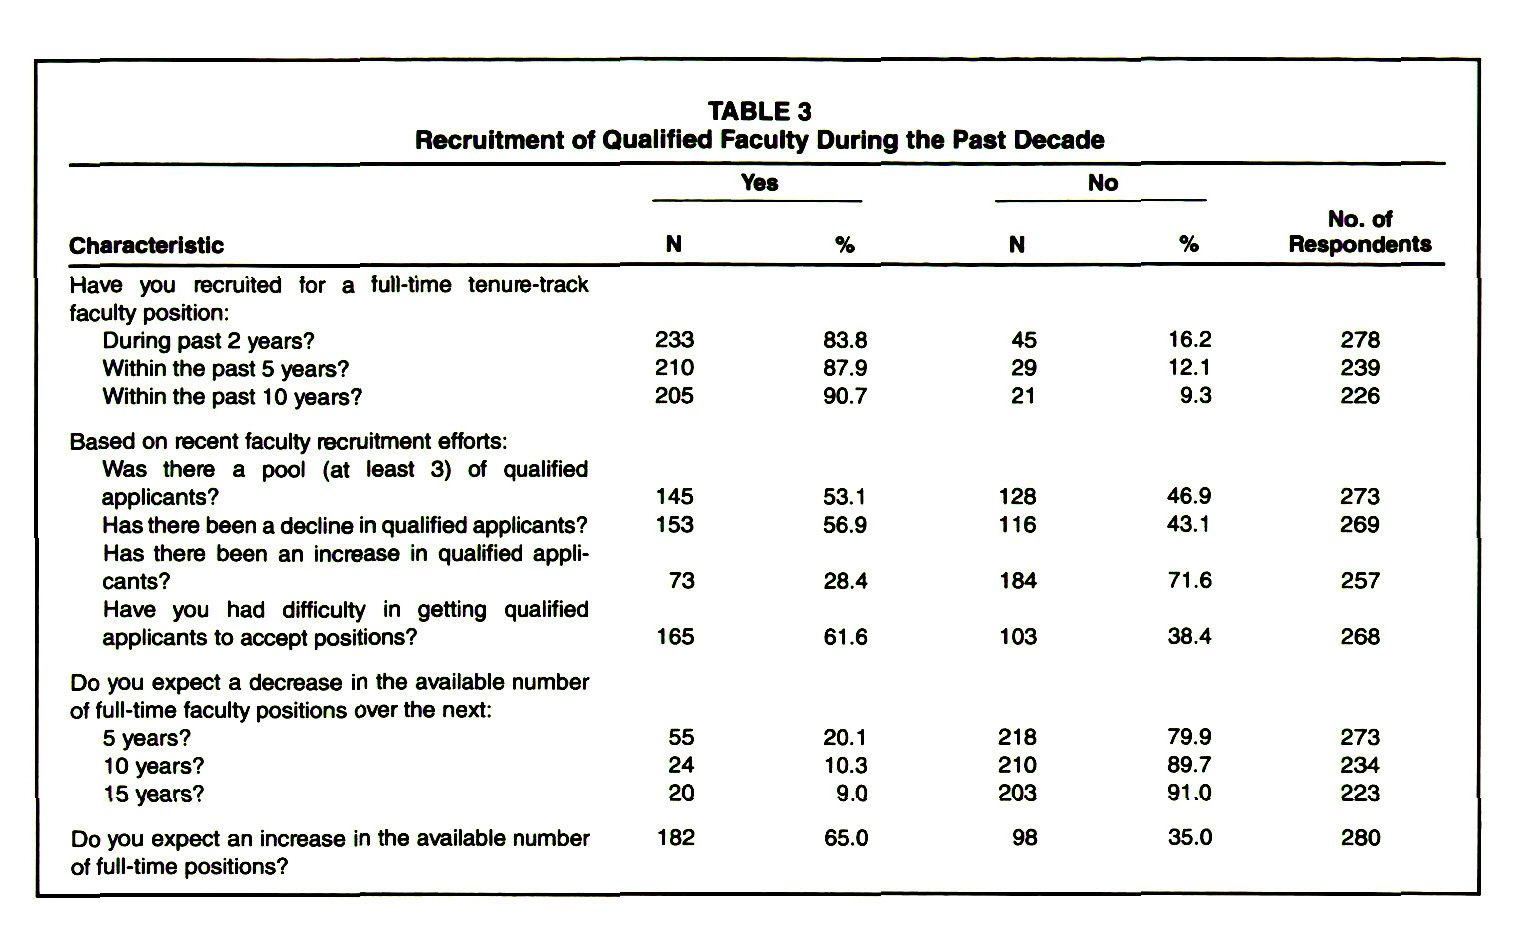 TABLE 3Recruitment of Qualified Faculty During the Past Decade